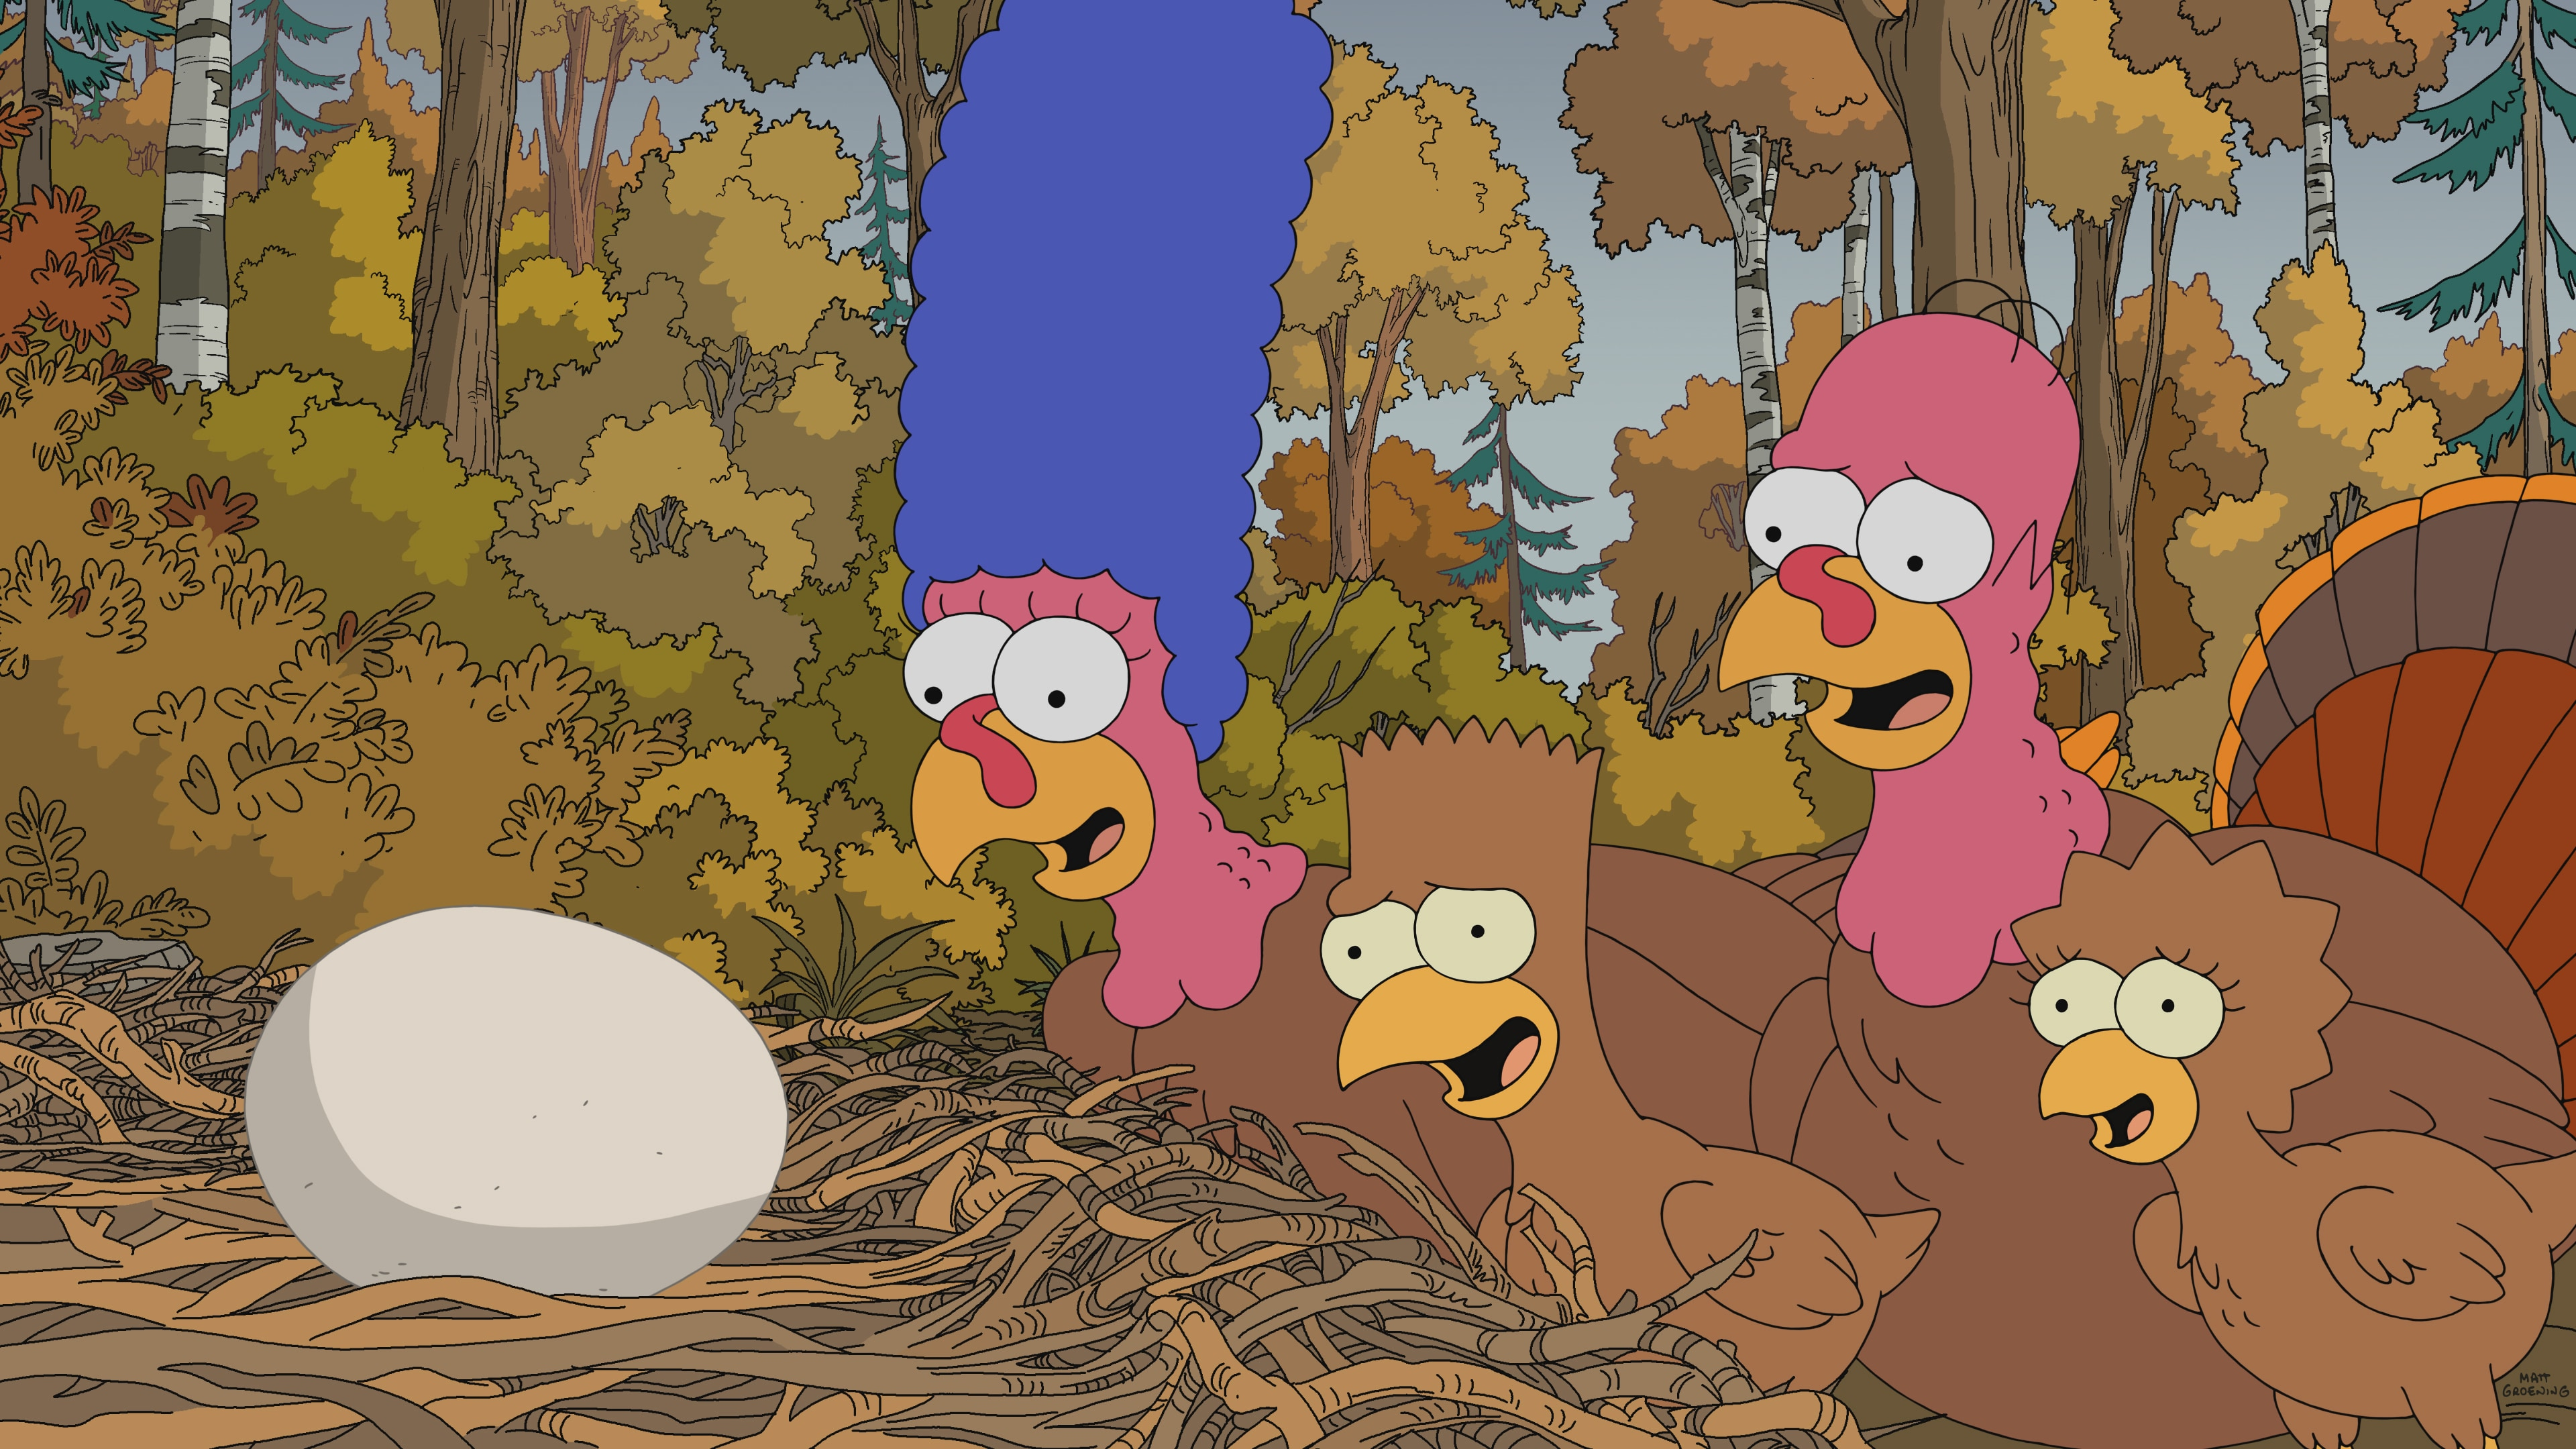 """THE SIMPSONS: In a special Thanksgiving edition of """"Treehouse of Horror,"""" the Simpsons are forced to face various Thanksgiving nightmares, including the first Thanksgiving, an A.I. mishap and a dangerous space mission complicated by a sentient cranberry sauce in the """"Thanksgiving of Horror"""" episode of THE SIMPSONS."""